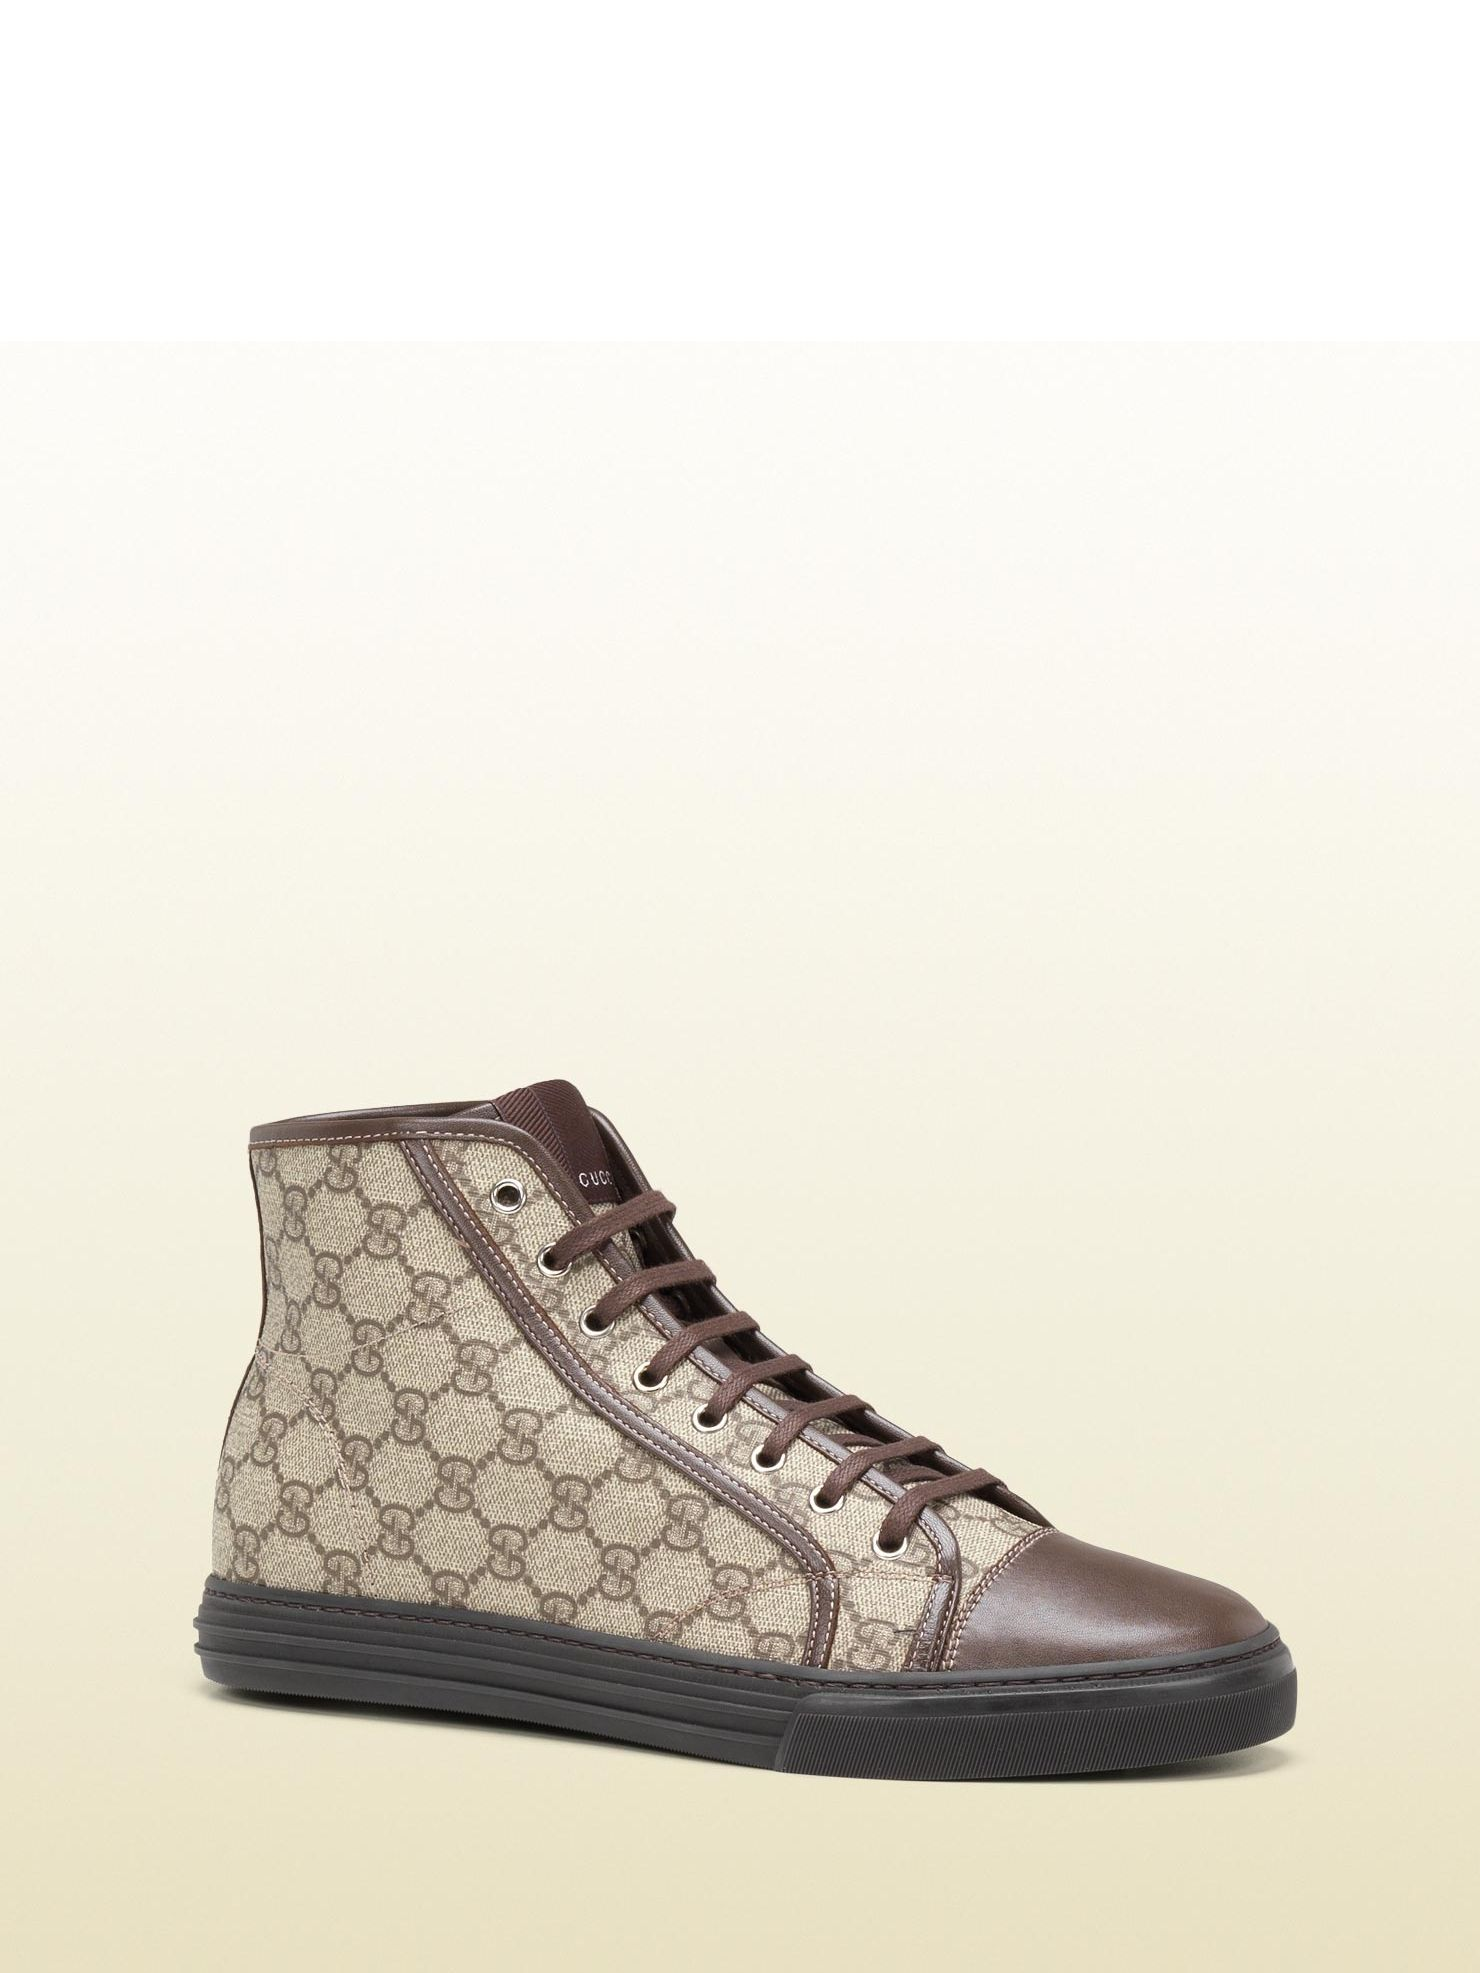 d3e50468c Gucci - 295383 FCIT0 9795 - hi-top lace-up sneaker - beige/ebony GG plus  with brown leather trim*Made in Italy rubber sole with embossed gucci  script logo ...